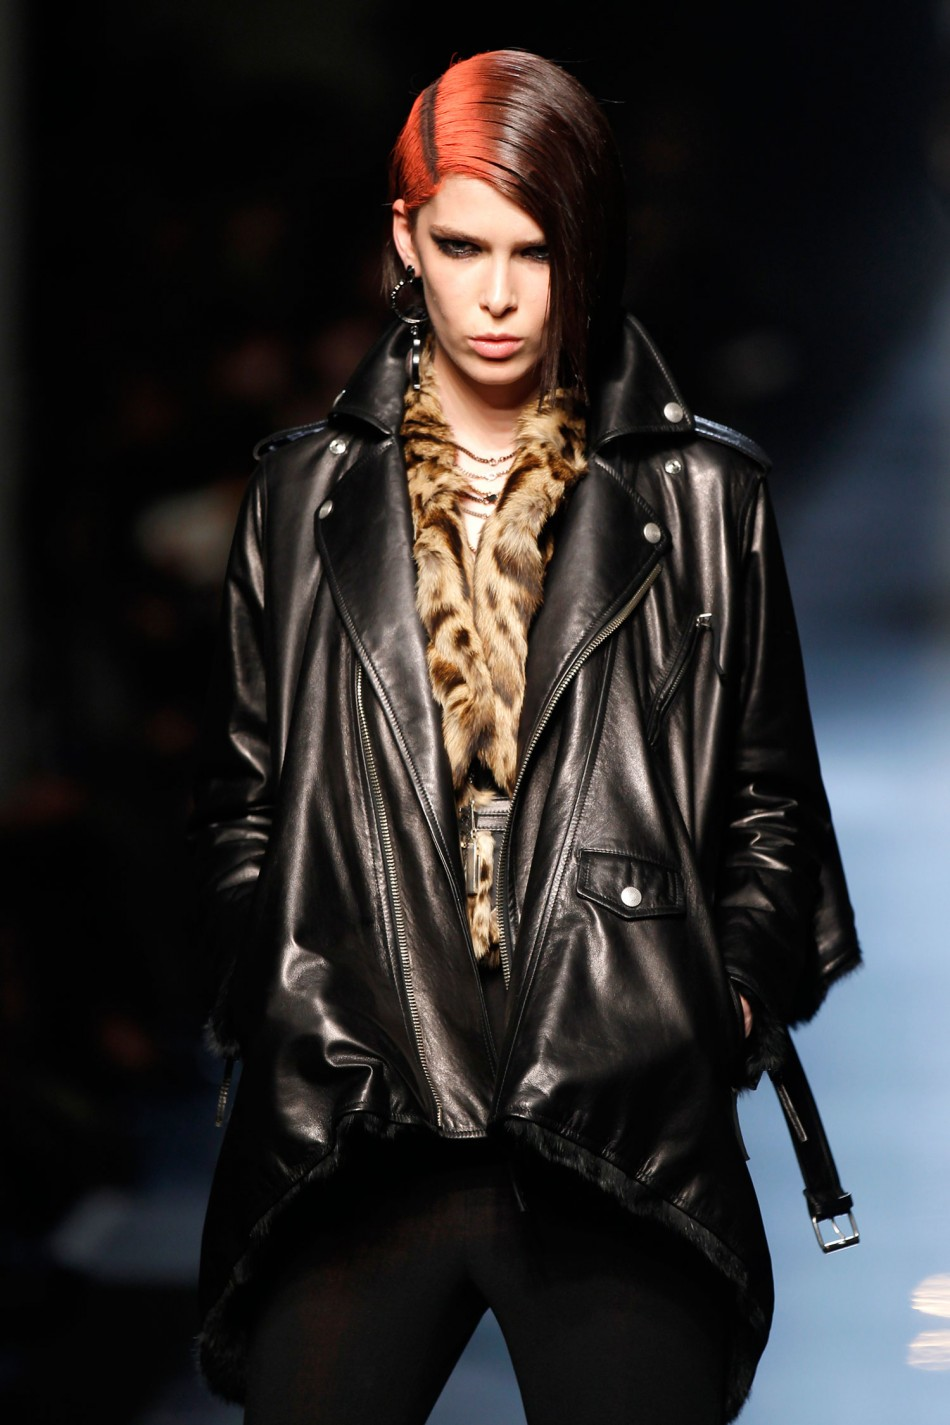 Androgynous Model Andrej Pejic Walks the Ramp for Jean Paul Gaultier's Fall/Winter Collection